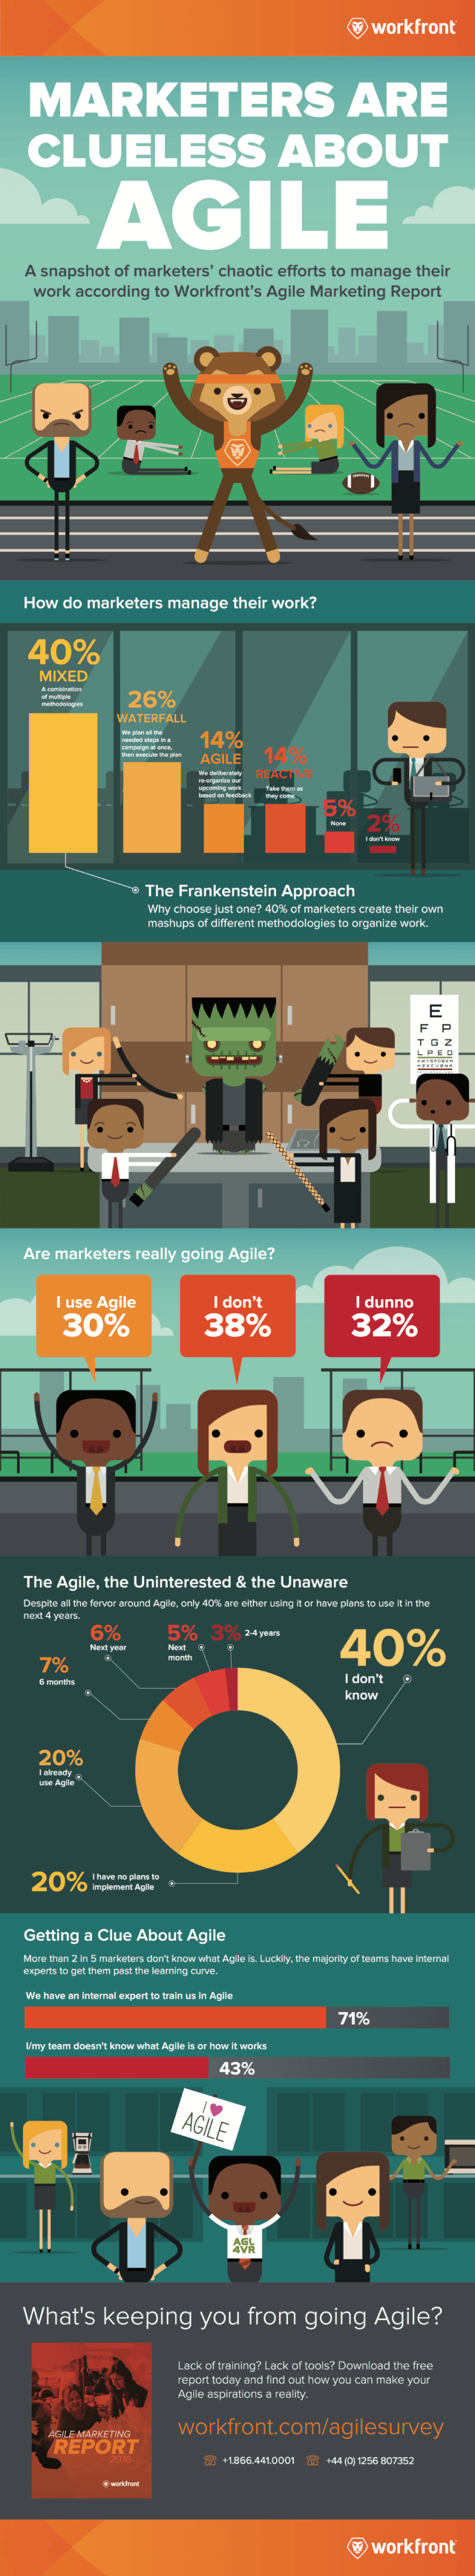 The State of Agile Marketing in 2016